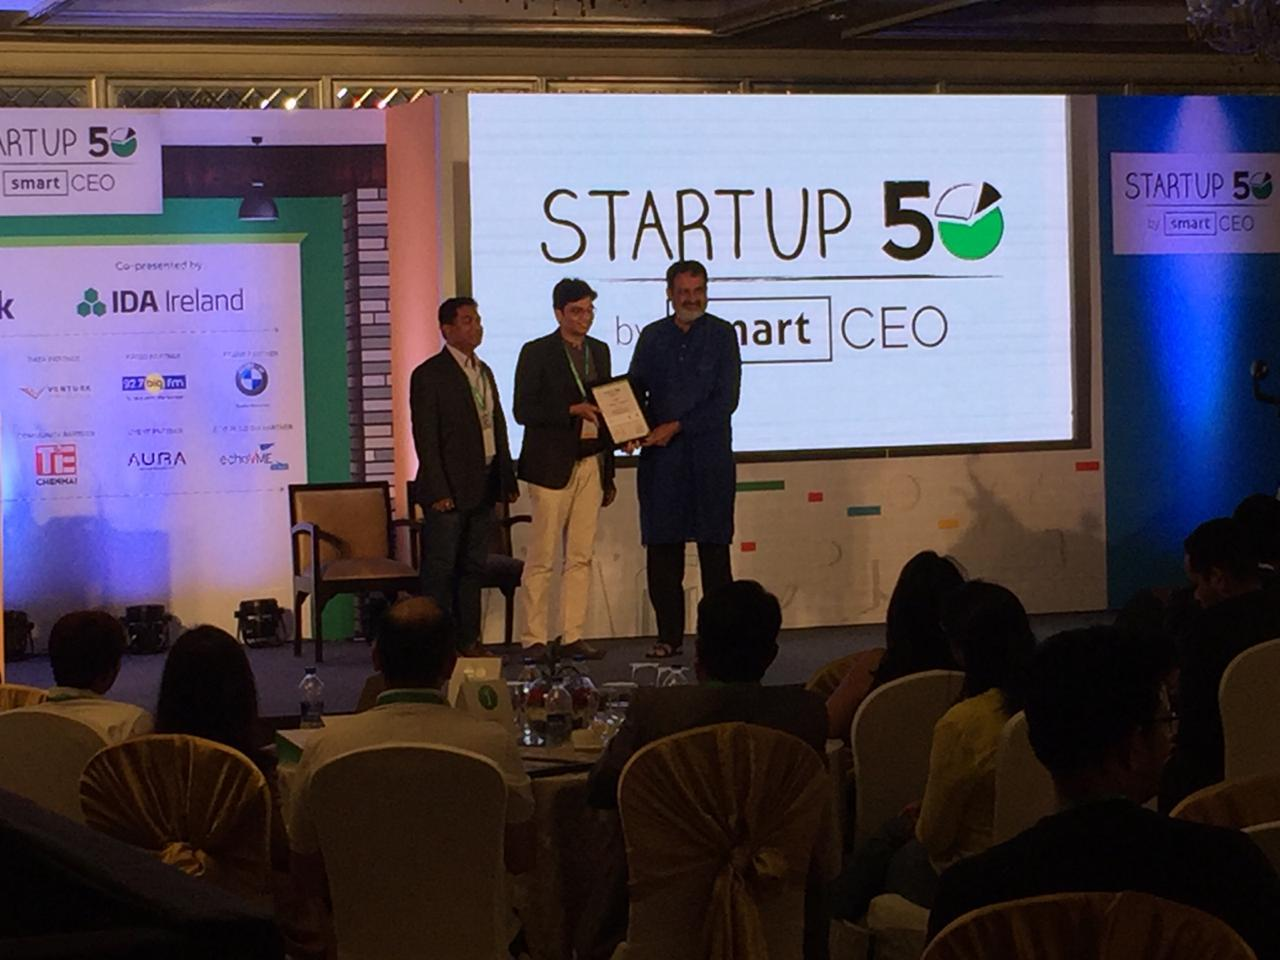 The Smart CEO Startup50